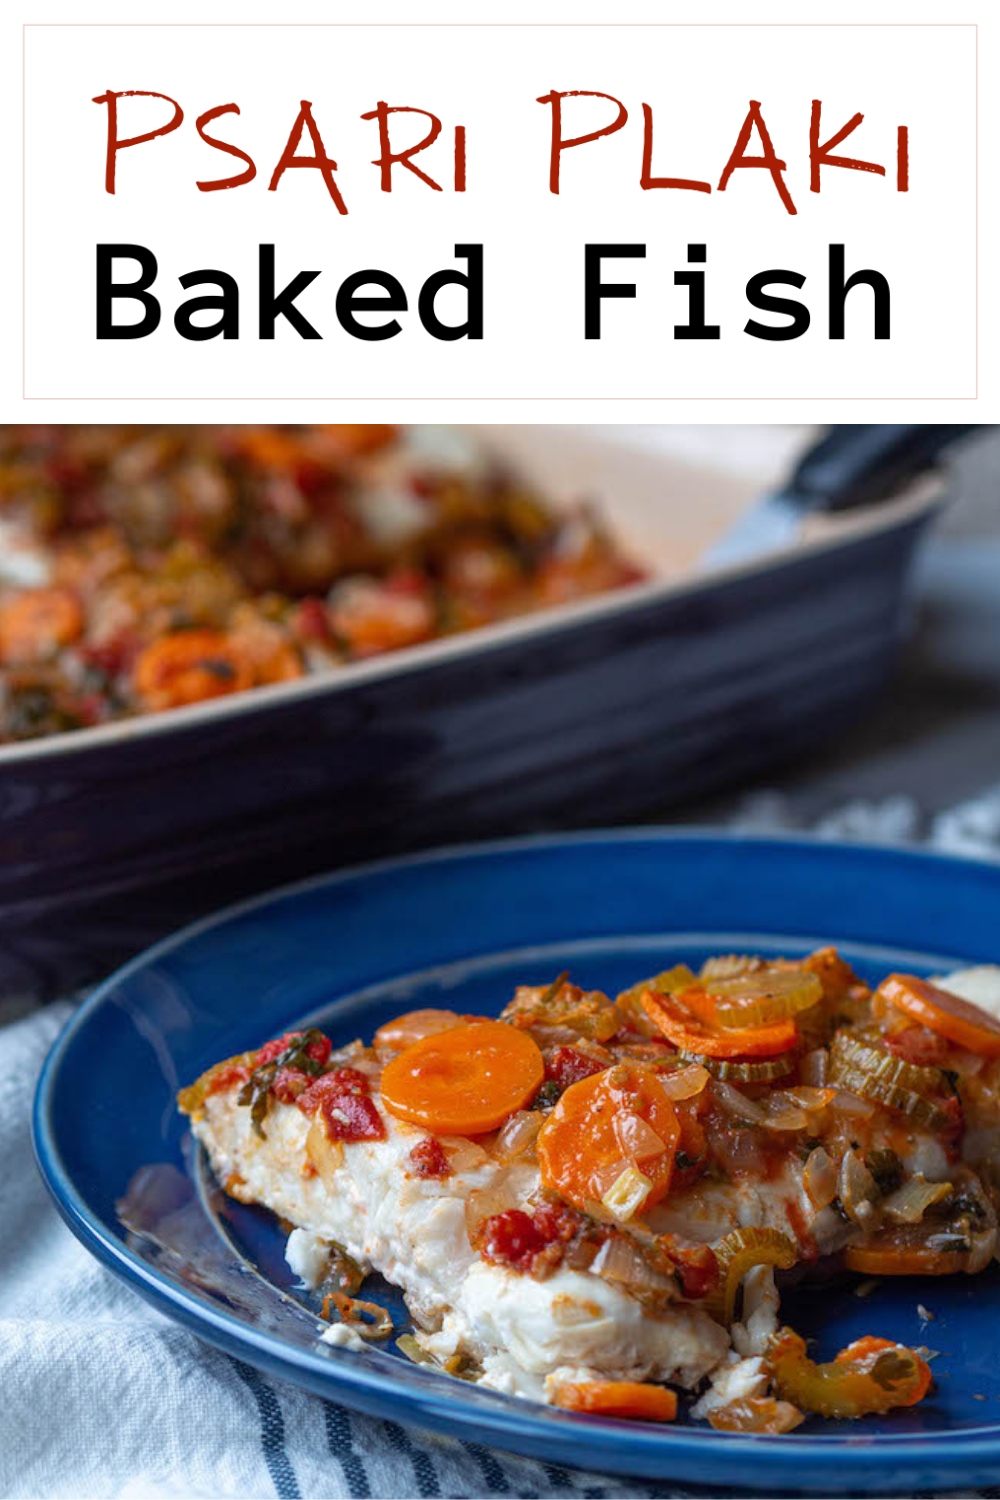 One of the traditional Greek meals that my mother Eleni makes for Palm Sunday is Psari Plaki or Greek Style Baked Fish. via @CookLikeaGreek